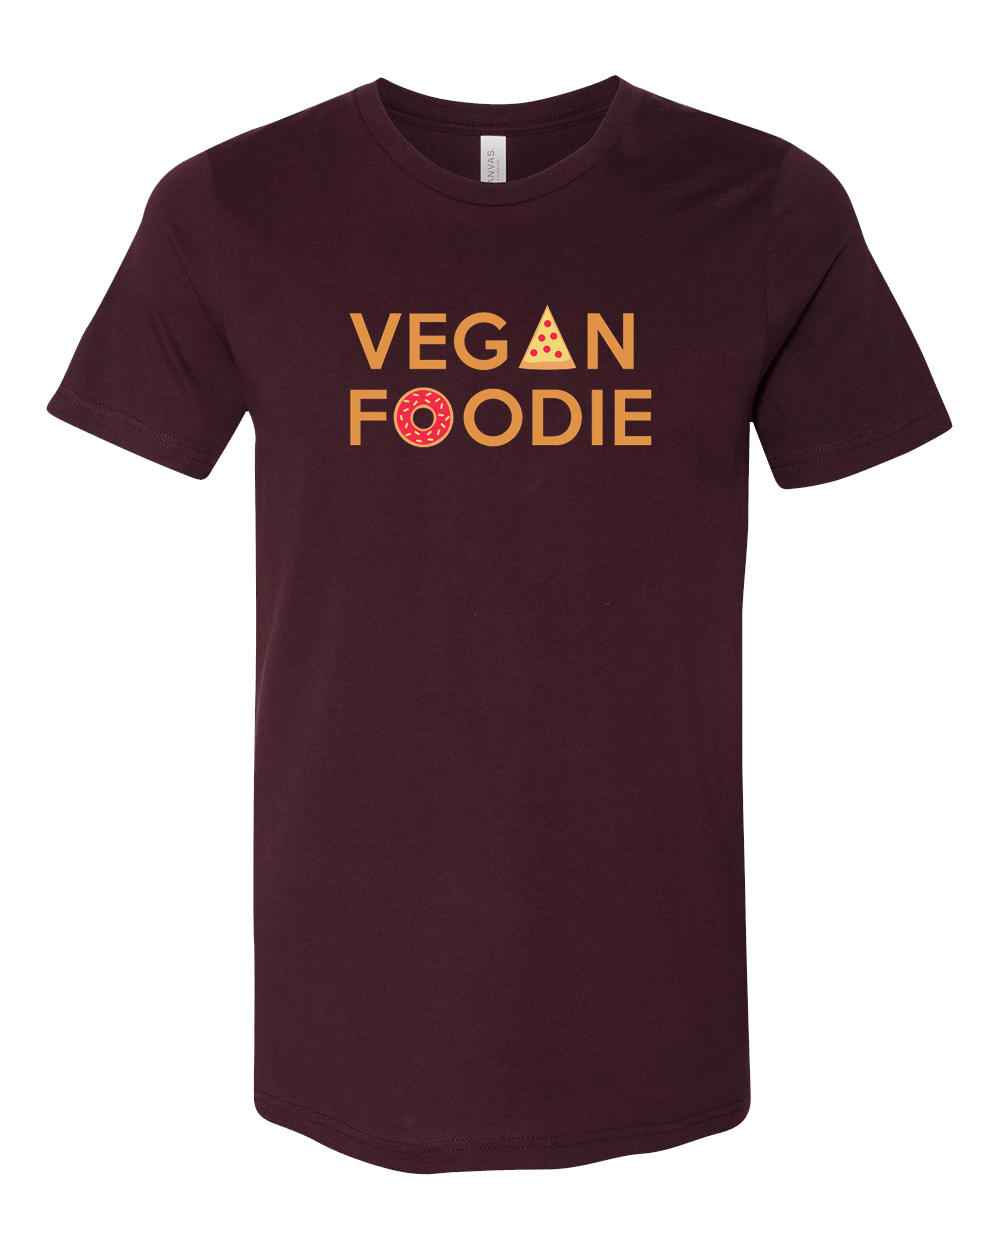 Vegan Foodie T-Shirt